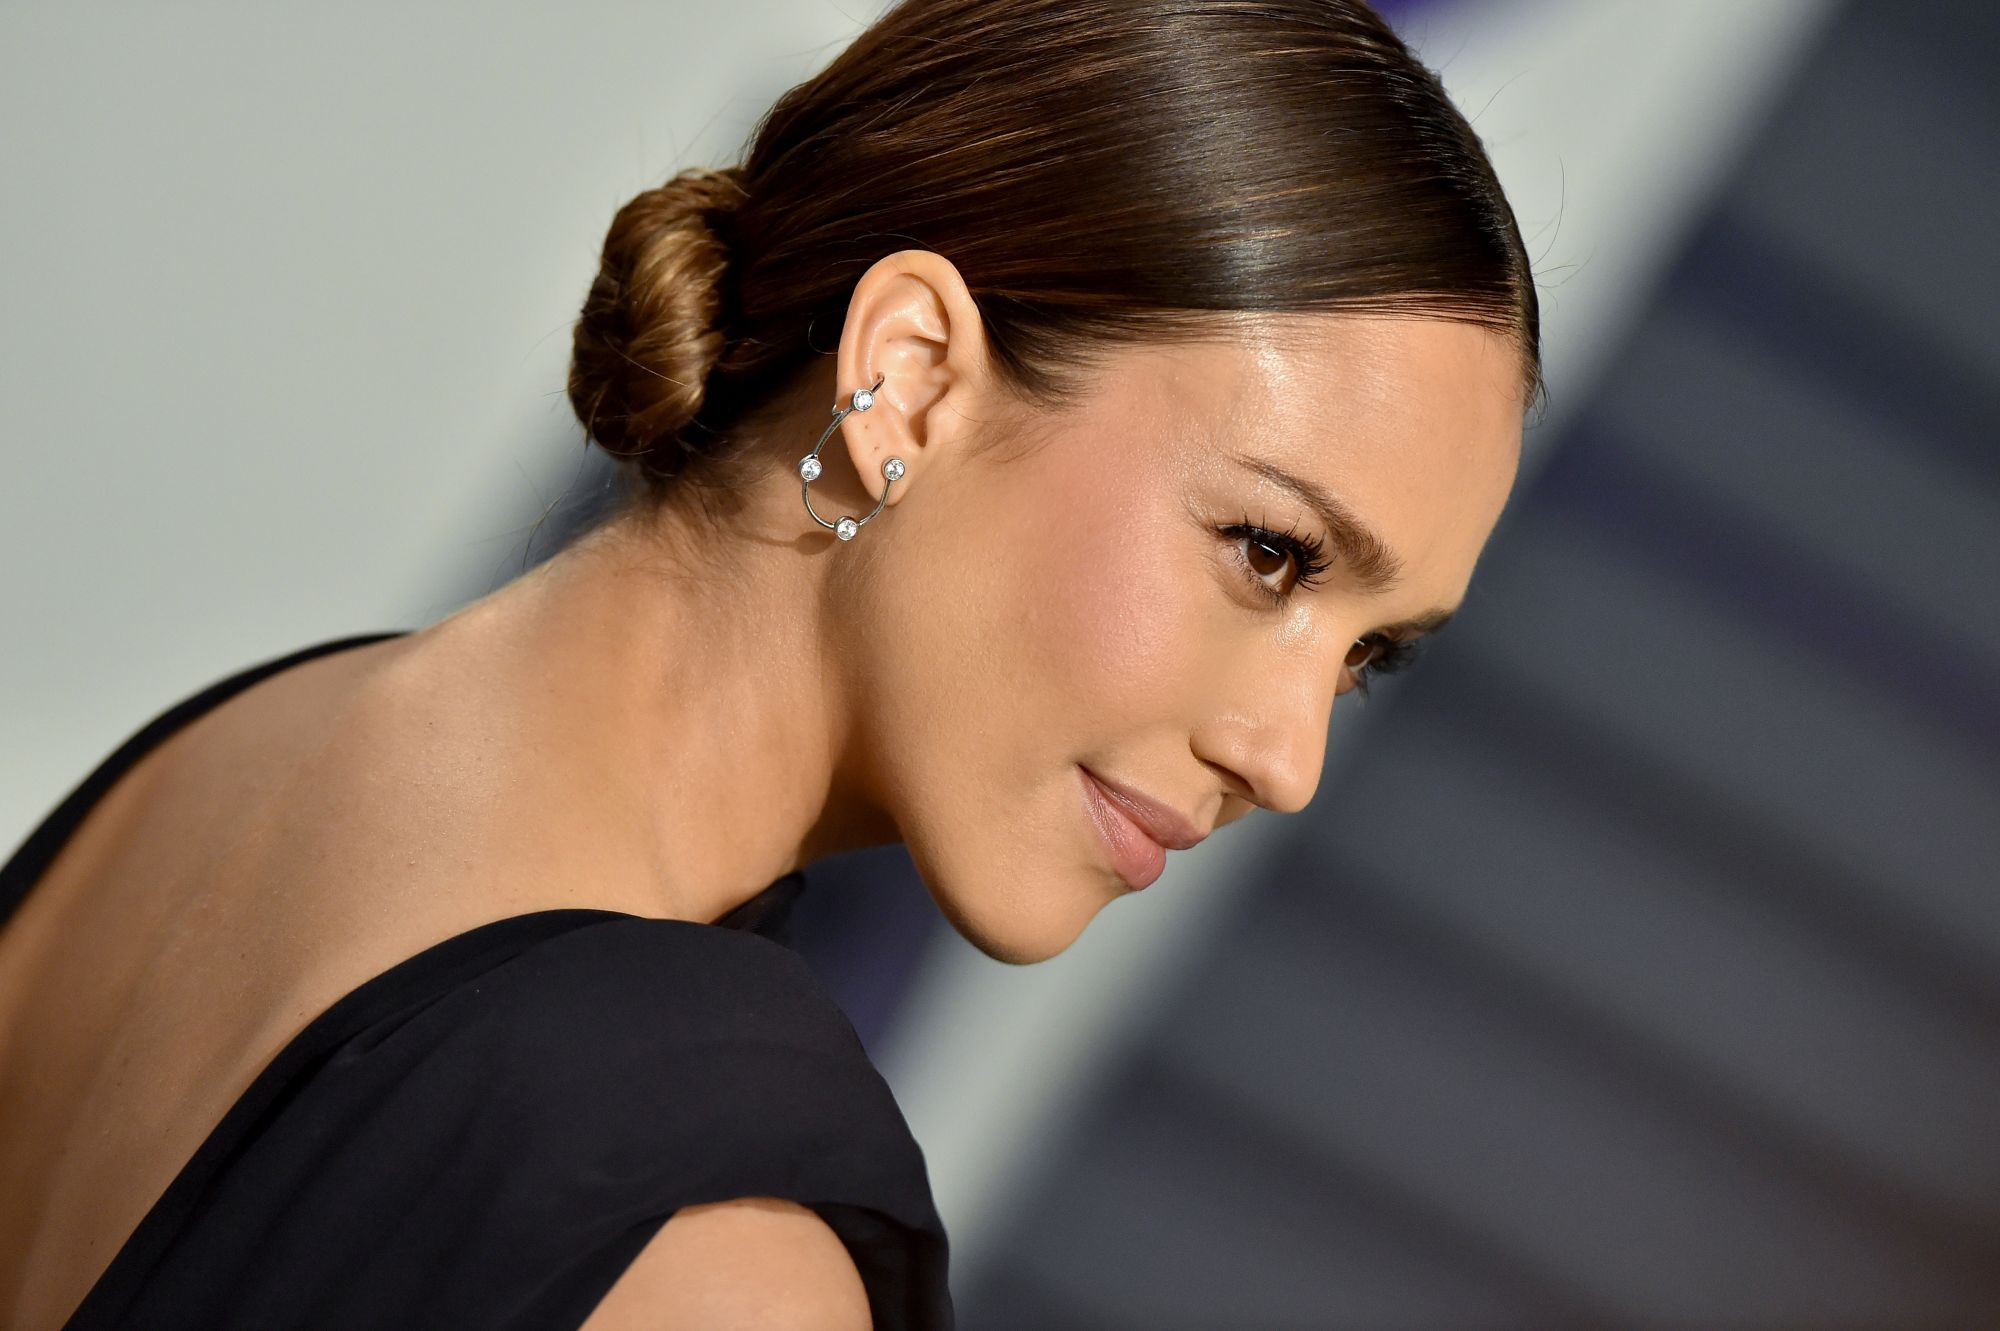 BEVERLY HILLS, CALIFORNIA - FEBRUARY 24: Jessica Alba attends the 2019 Vanity Fair Oscar Party Hosted By Radhika Jones at Wallis Annenberg Center for the Performing Arts on February 24, 2019 in Beverly Hills, California. (Photo by Axelle/Bauer-Griffin/FilmMagic)